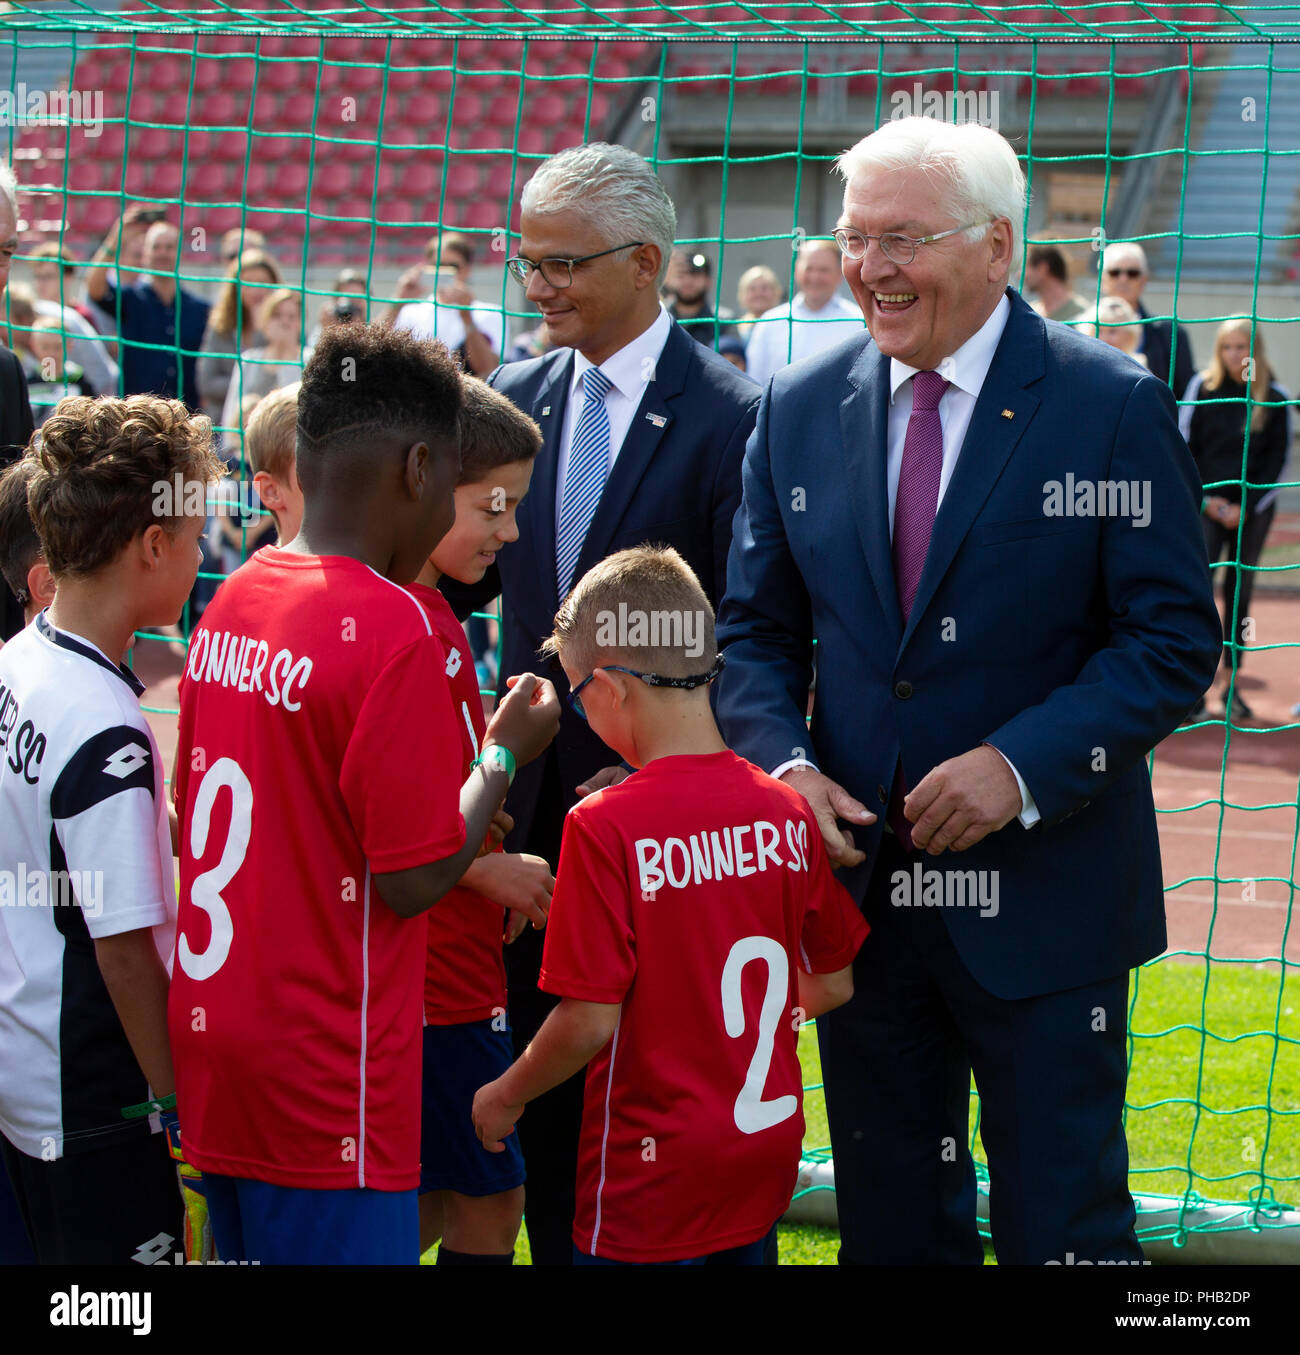 Bonn, Germany, August 31 2018:  Federal President Frank-Walter Steinmeier (R) visits sports club Bonner SC. Steinmeier informed himself about the integration work of the club.             Credit: Juergen Schwarz/Alamy Live News - Stock Image